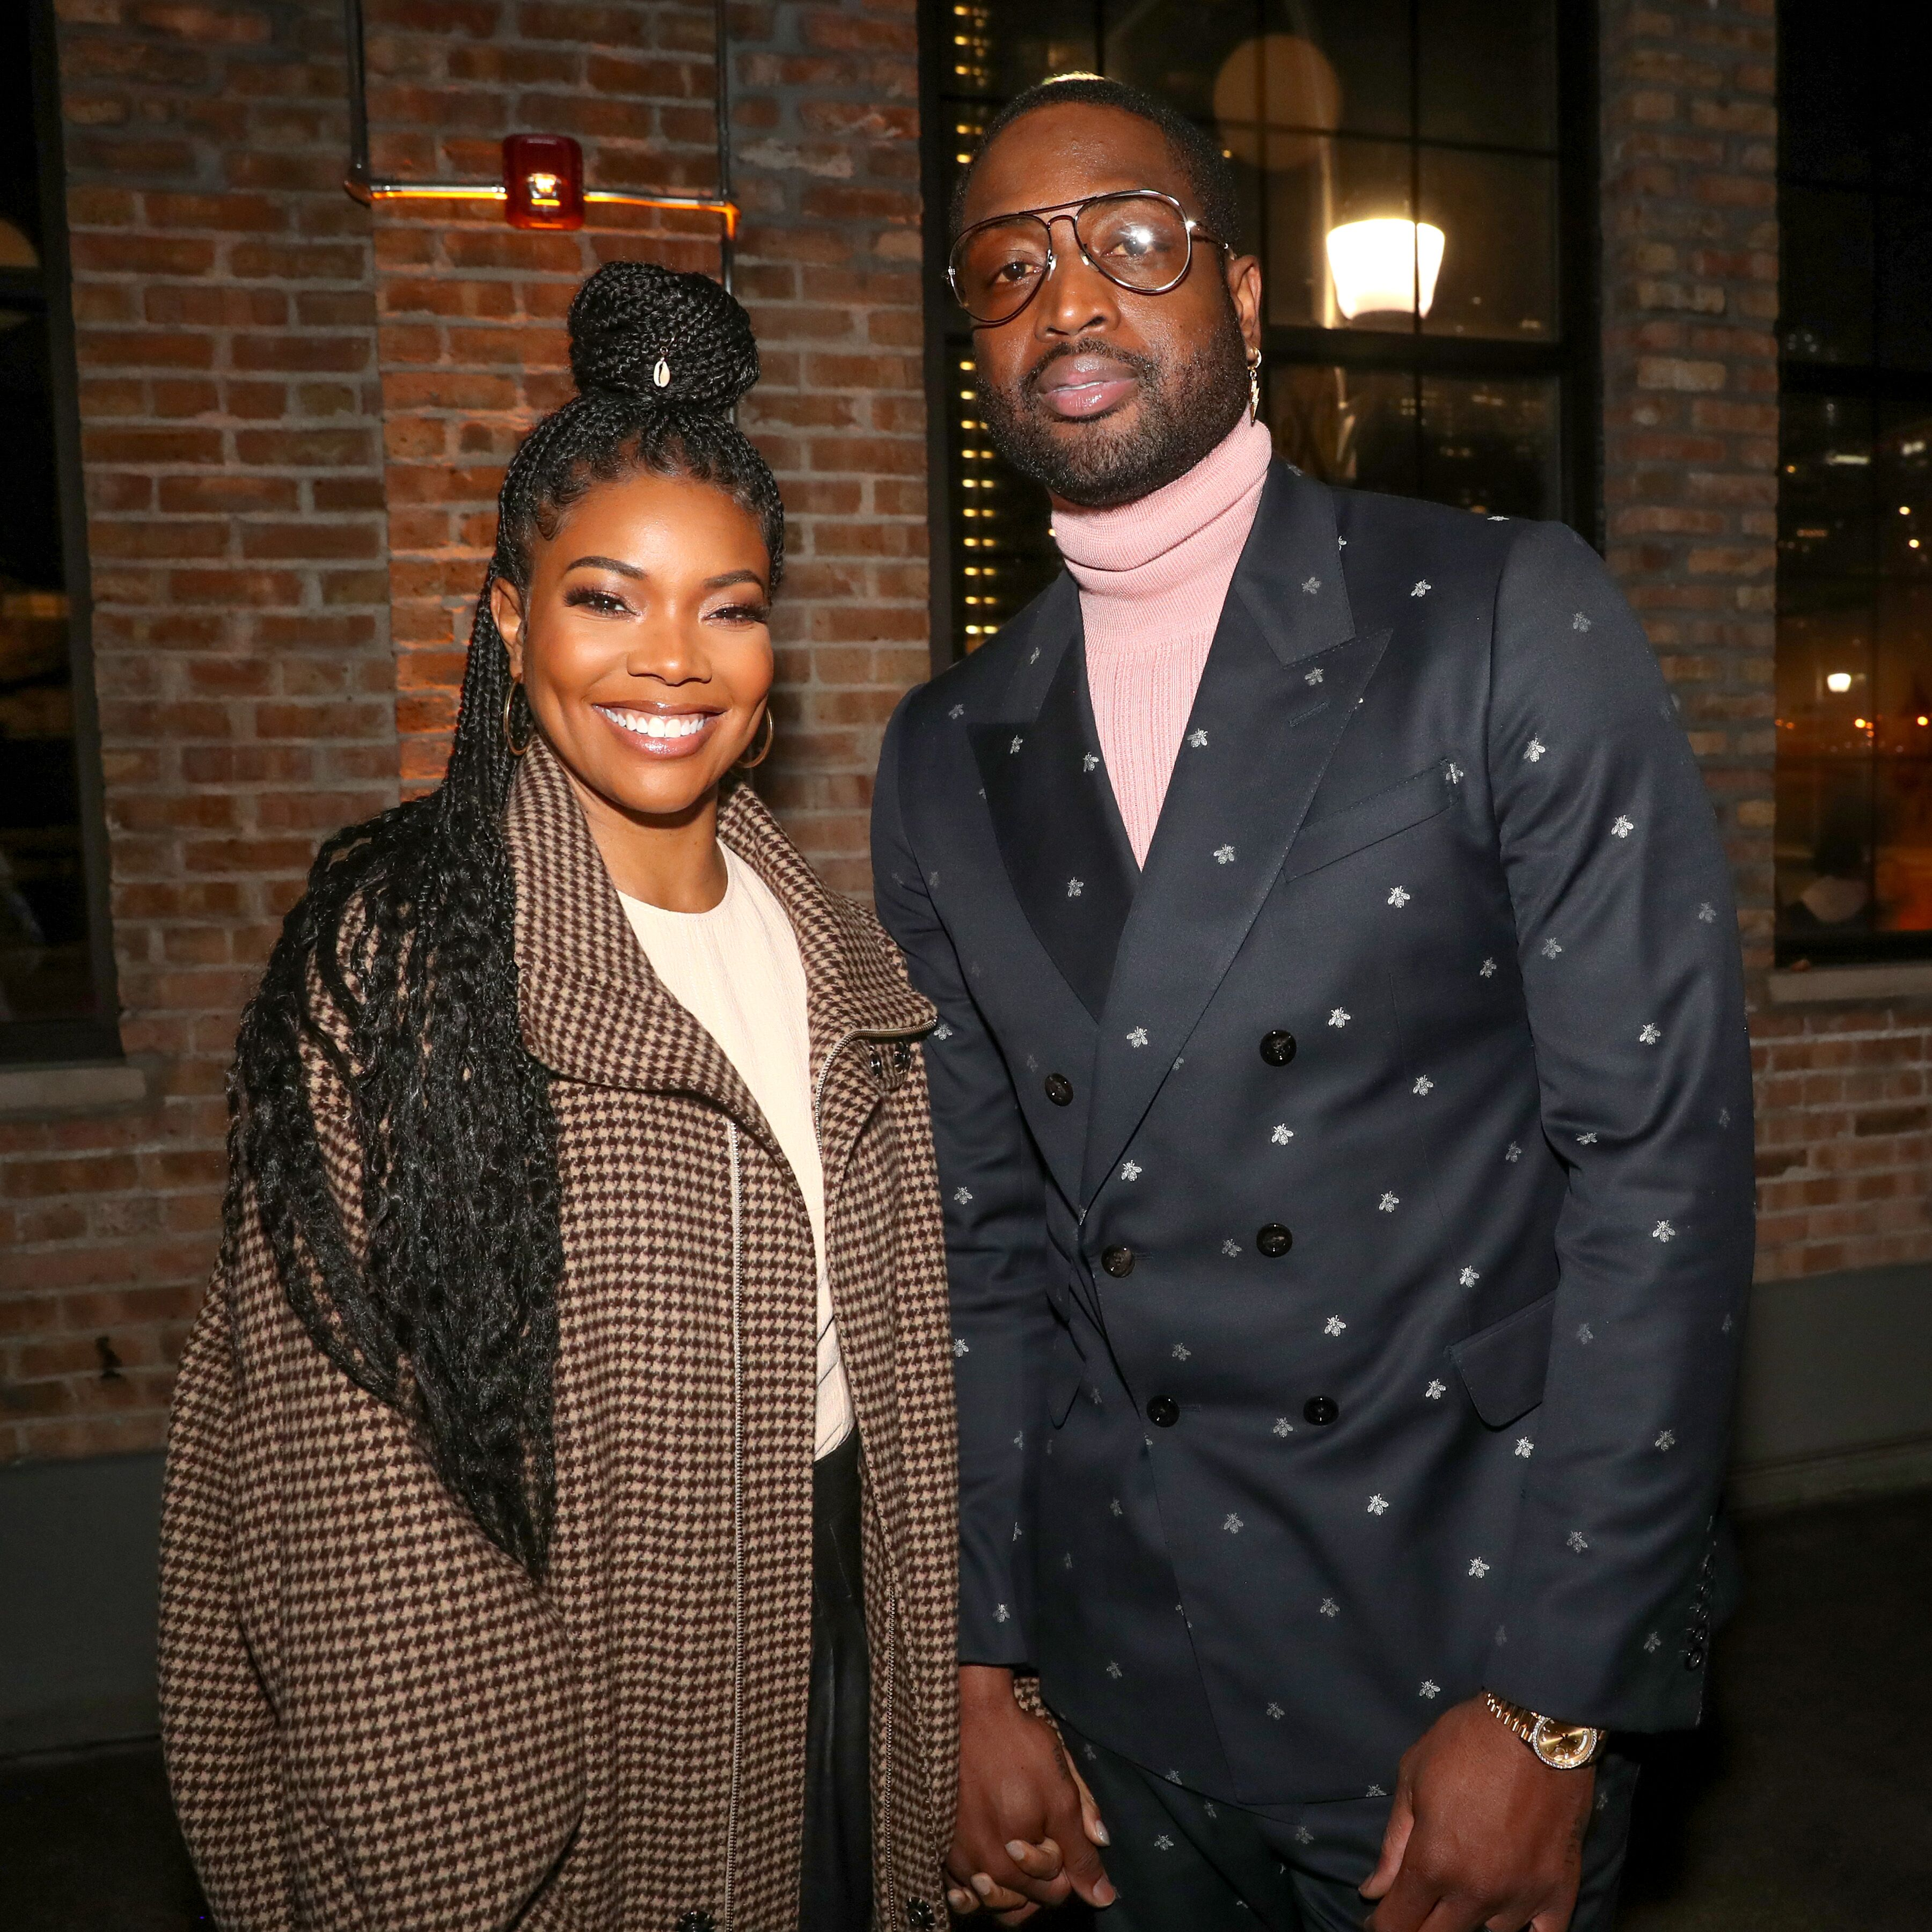 Gabrielle Union and Dwyane Wade attend Stance Spades At NBA All-Star 2020 at City Hall on February 15, 2020 in Chicago, Illinois | Photo: Getty Images